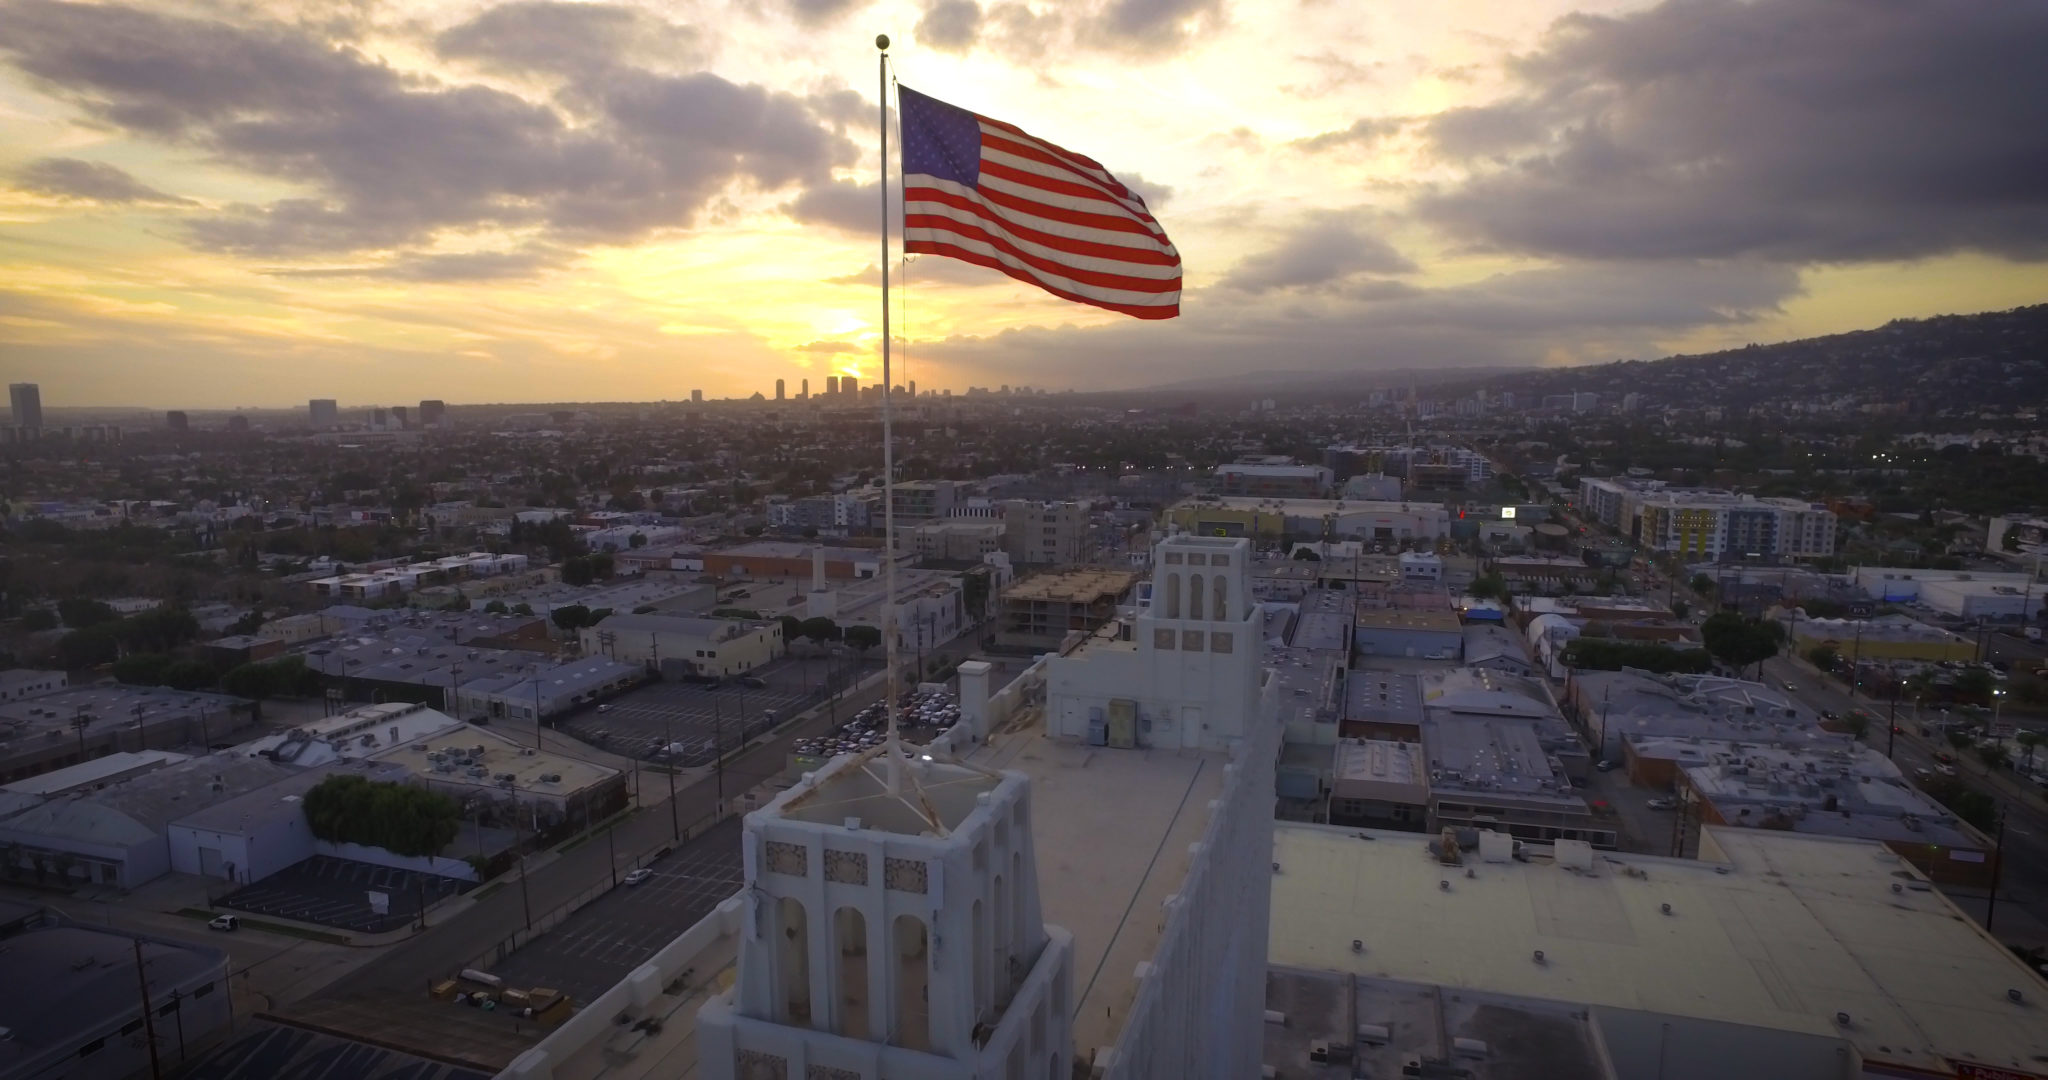 Watch the aerial film  in 4K from Los Angeles here!